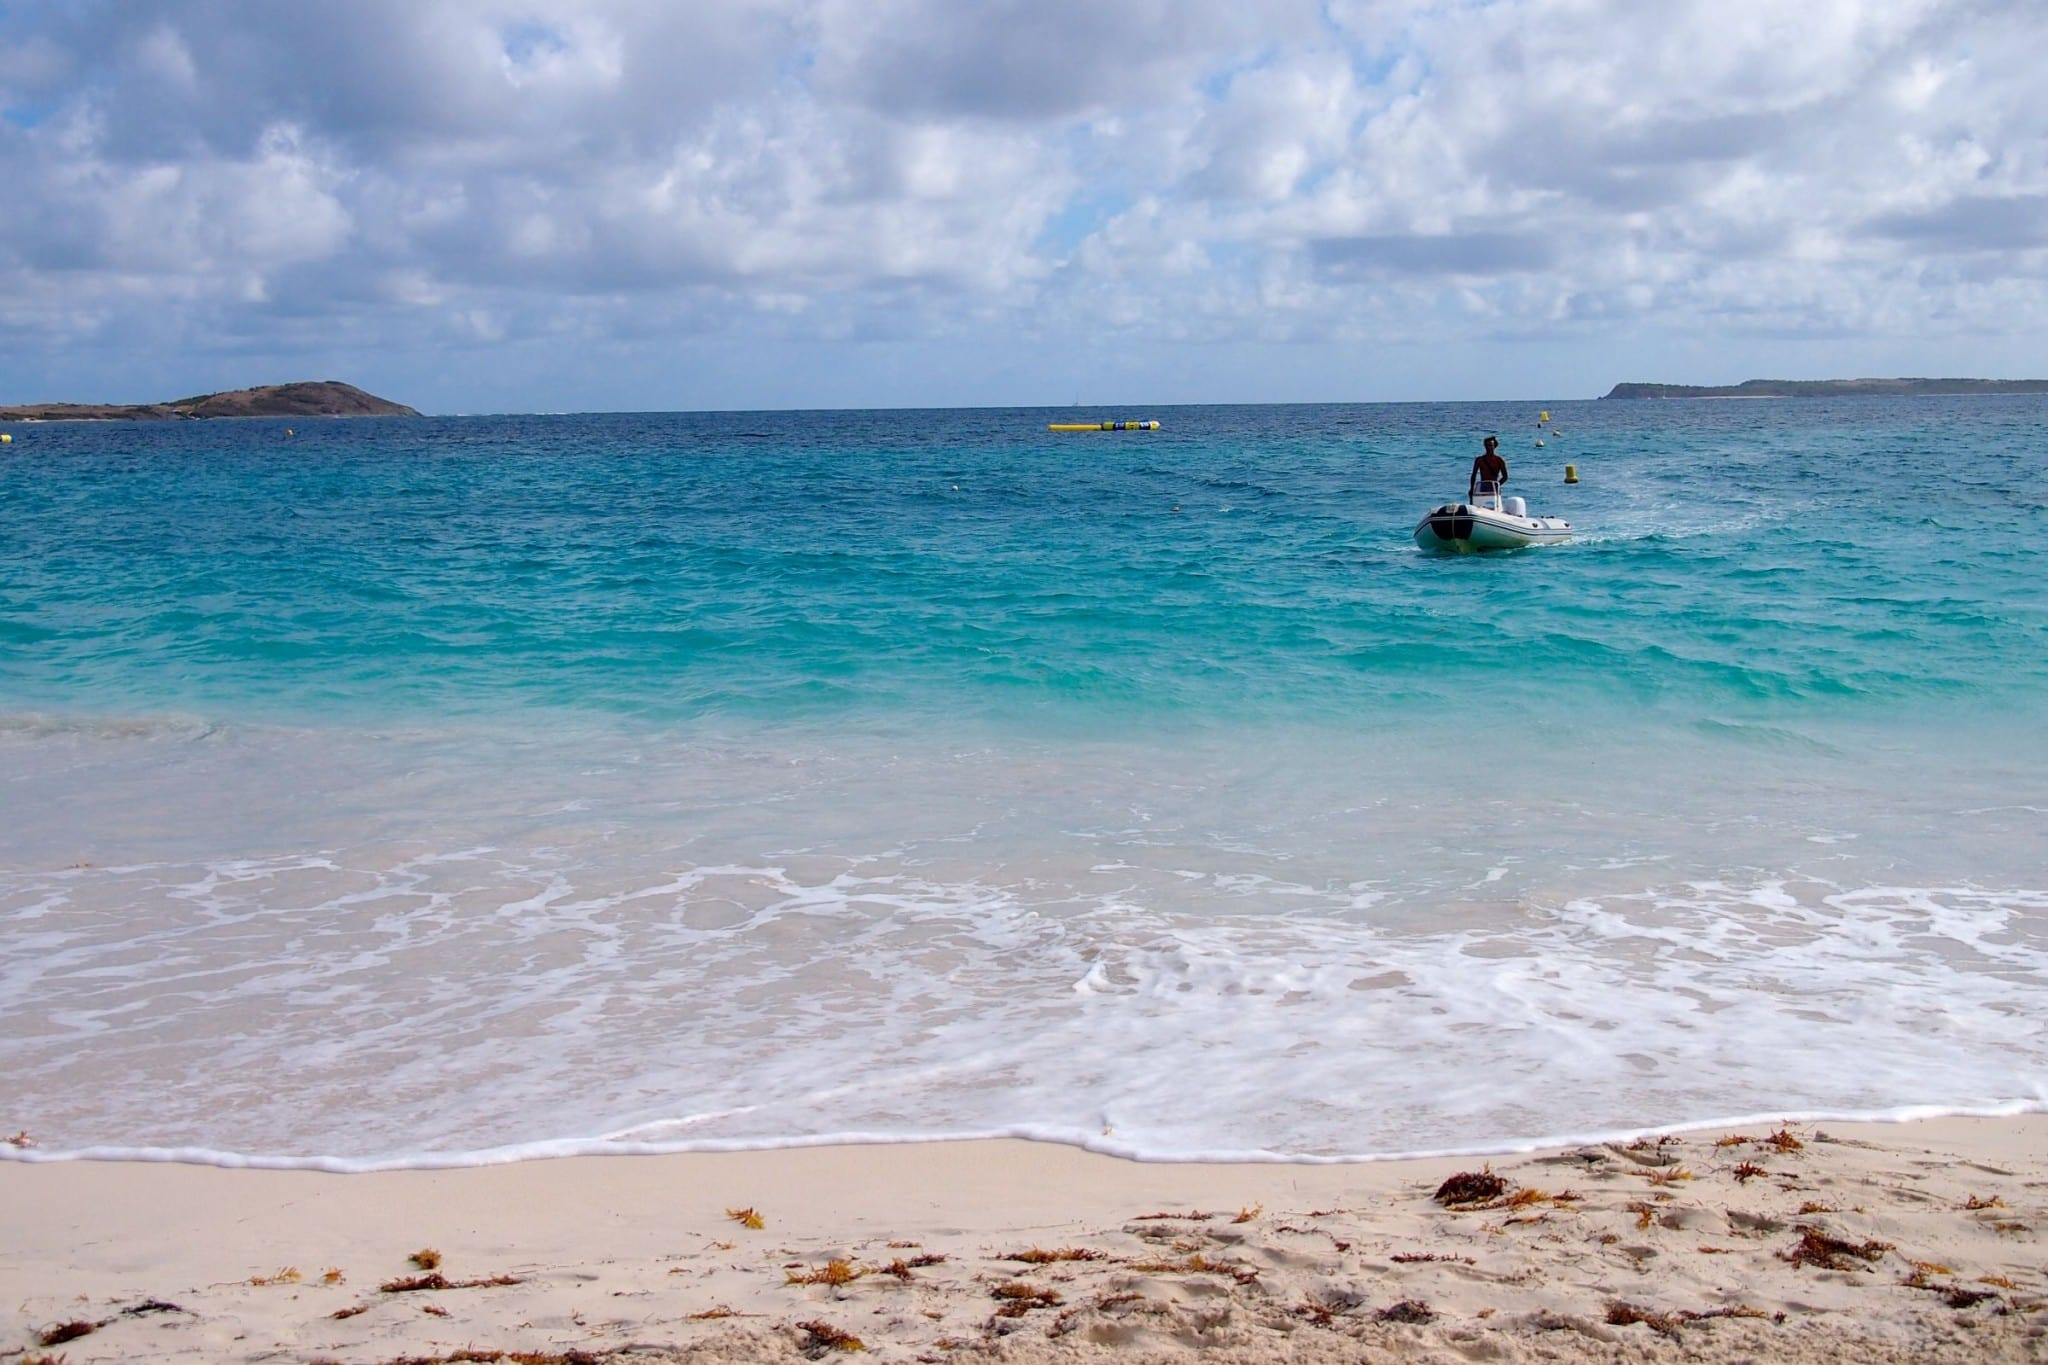 Boating Ashore at Orient Bay, St. Martin: Wish You Were Here